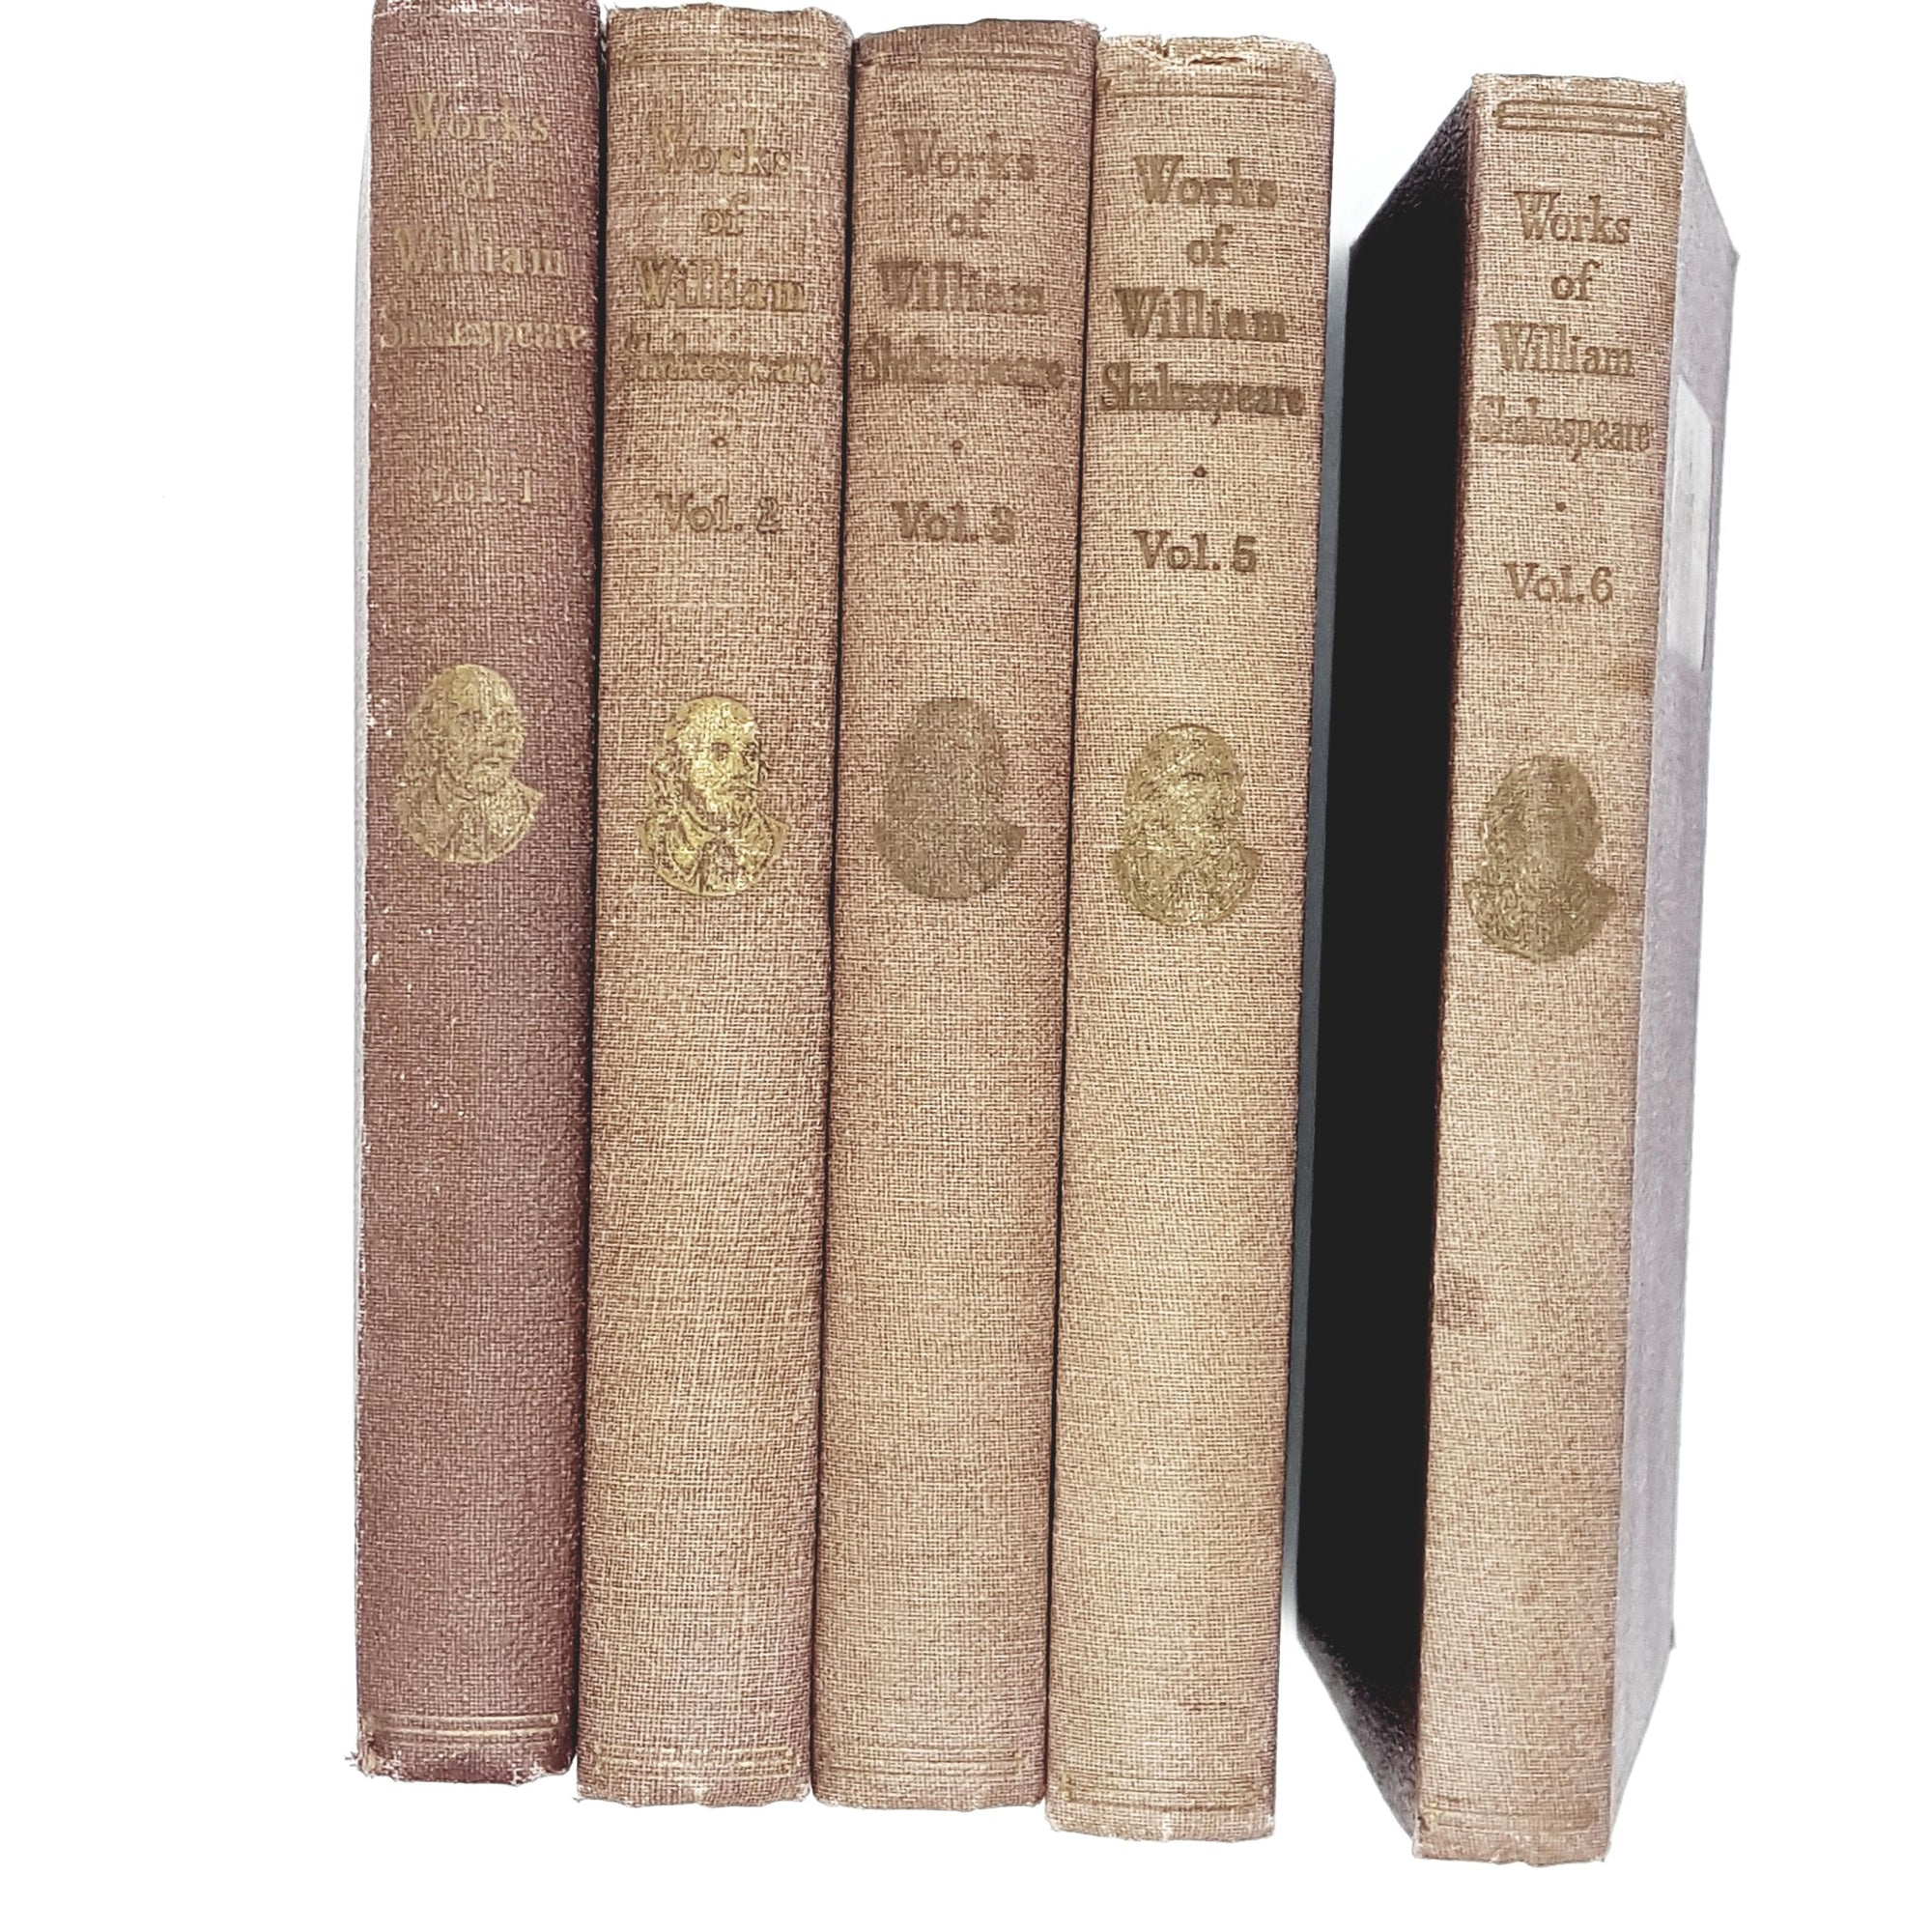 Collection Works of Shakespeare